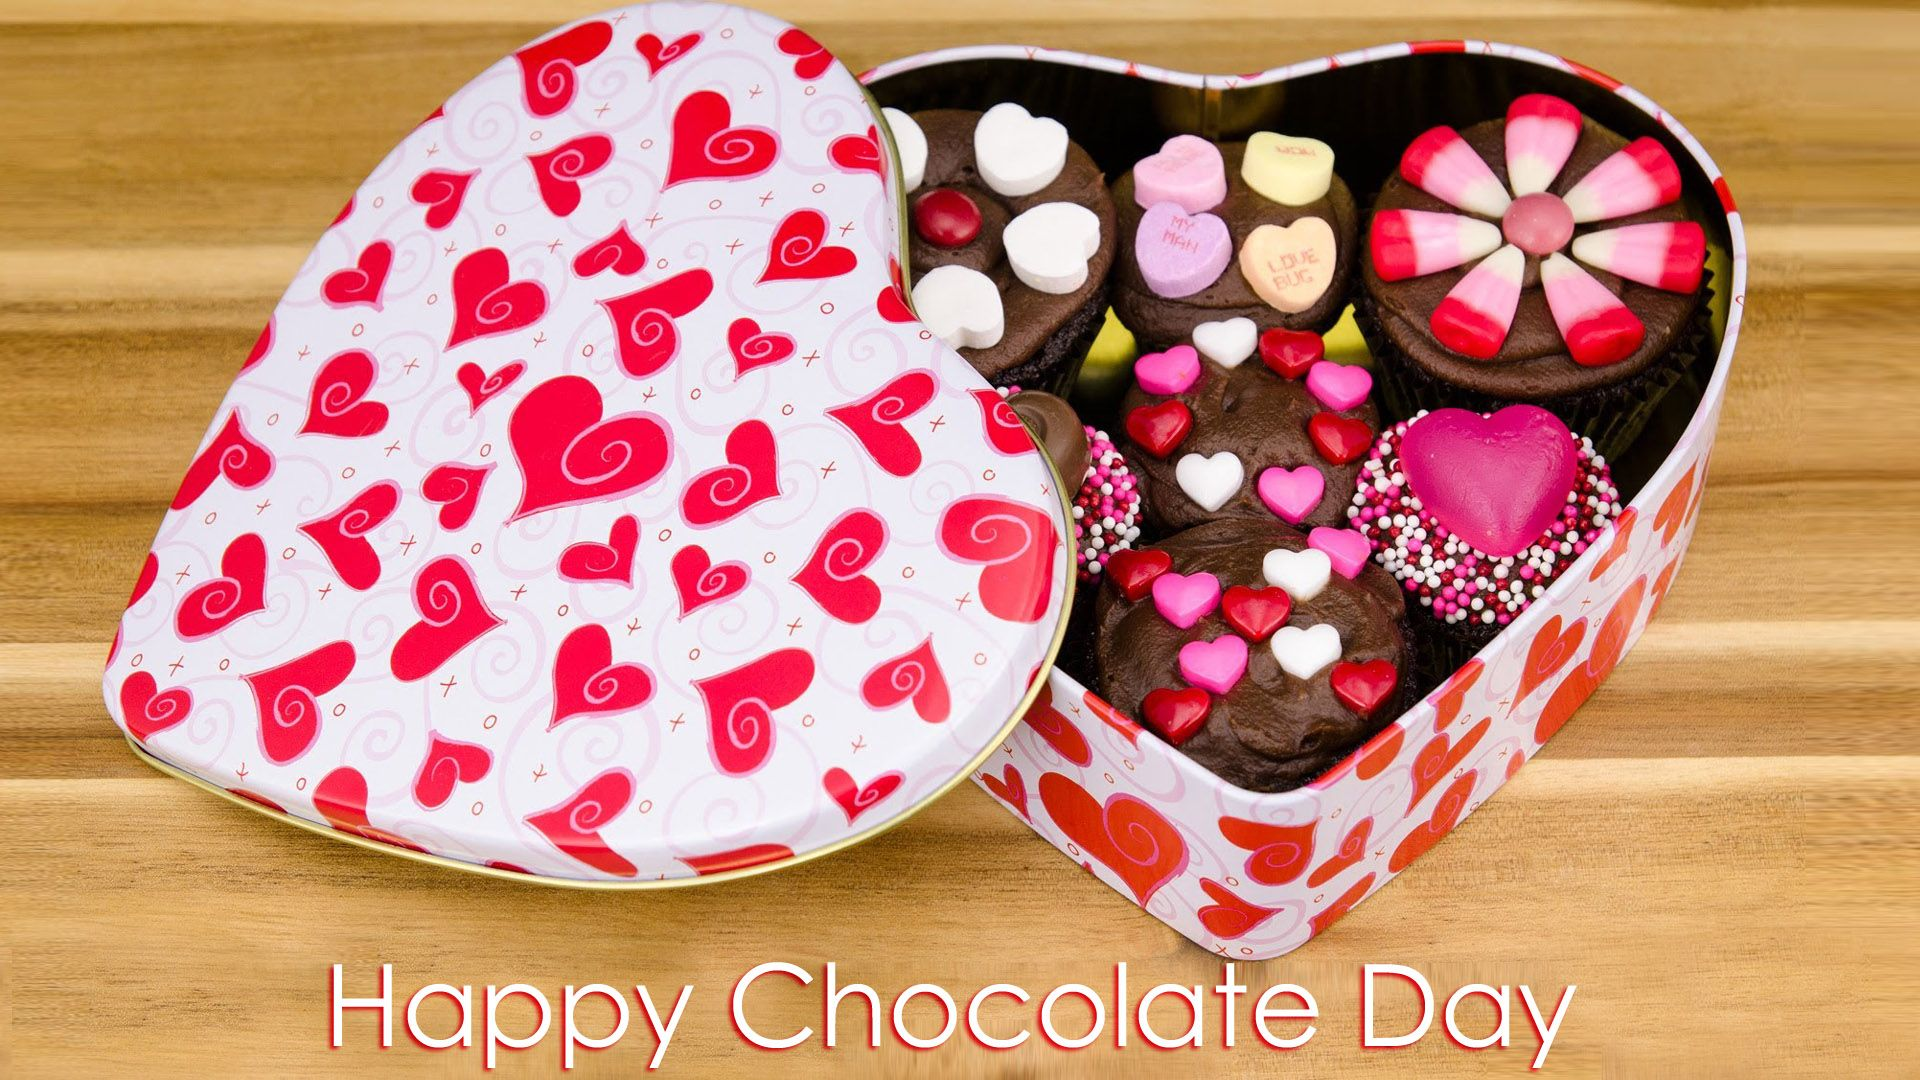 Happy Chocolate Day Hd Wallpaper Dazzling Wallpaper Happy Chocolate Day Chocolate Day Valentine Day Cupcakes Happy romantic chocolate day images for